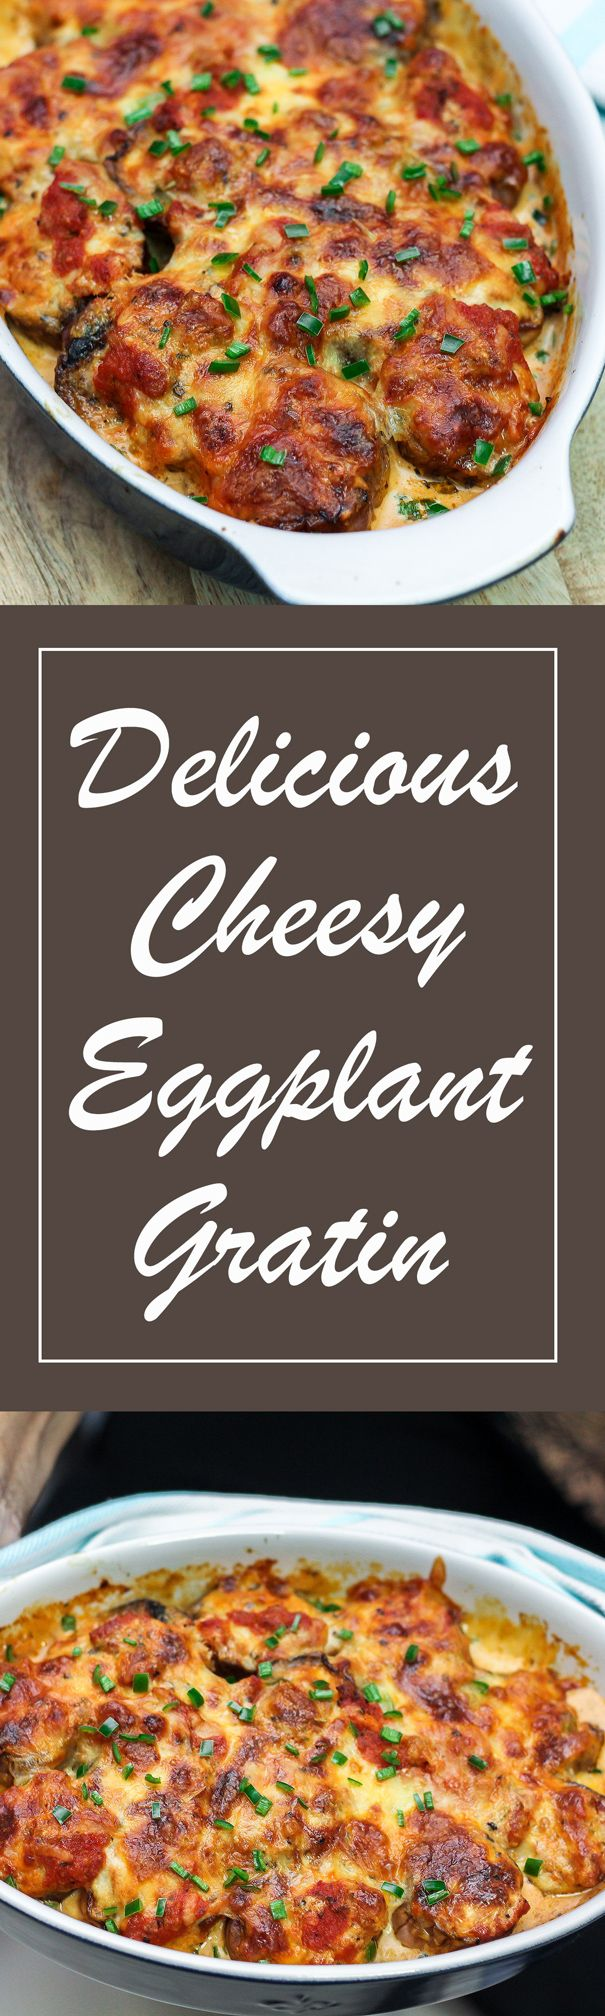 I love how simple this Cheesy Eggplant Gratin is. It is an elegant dish that is perfect whether you are hosting a dinner or bringing over for the person who would be hosting an event.